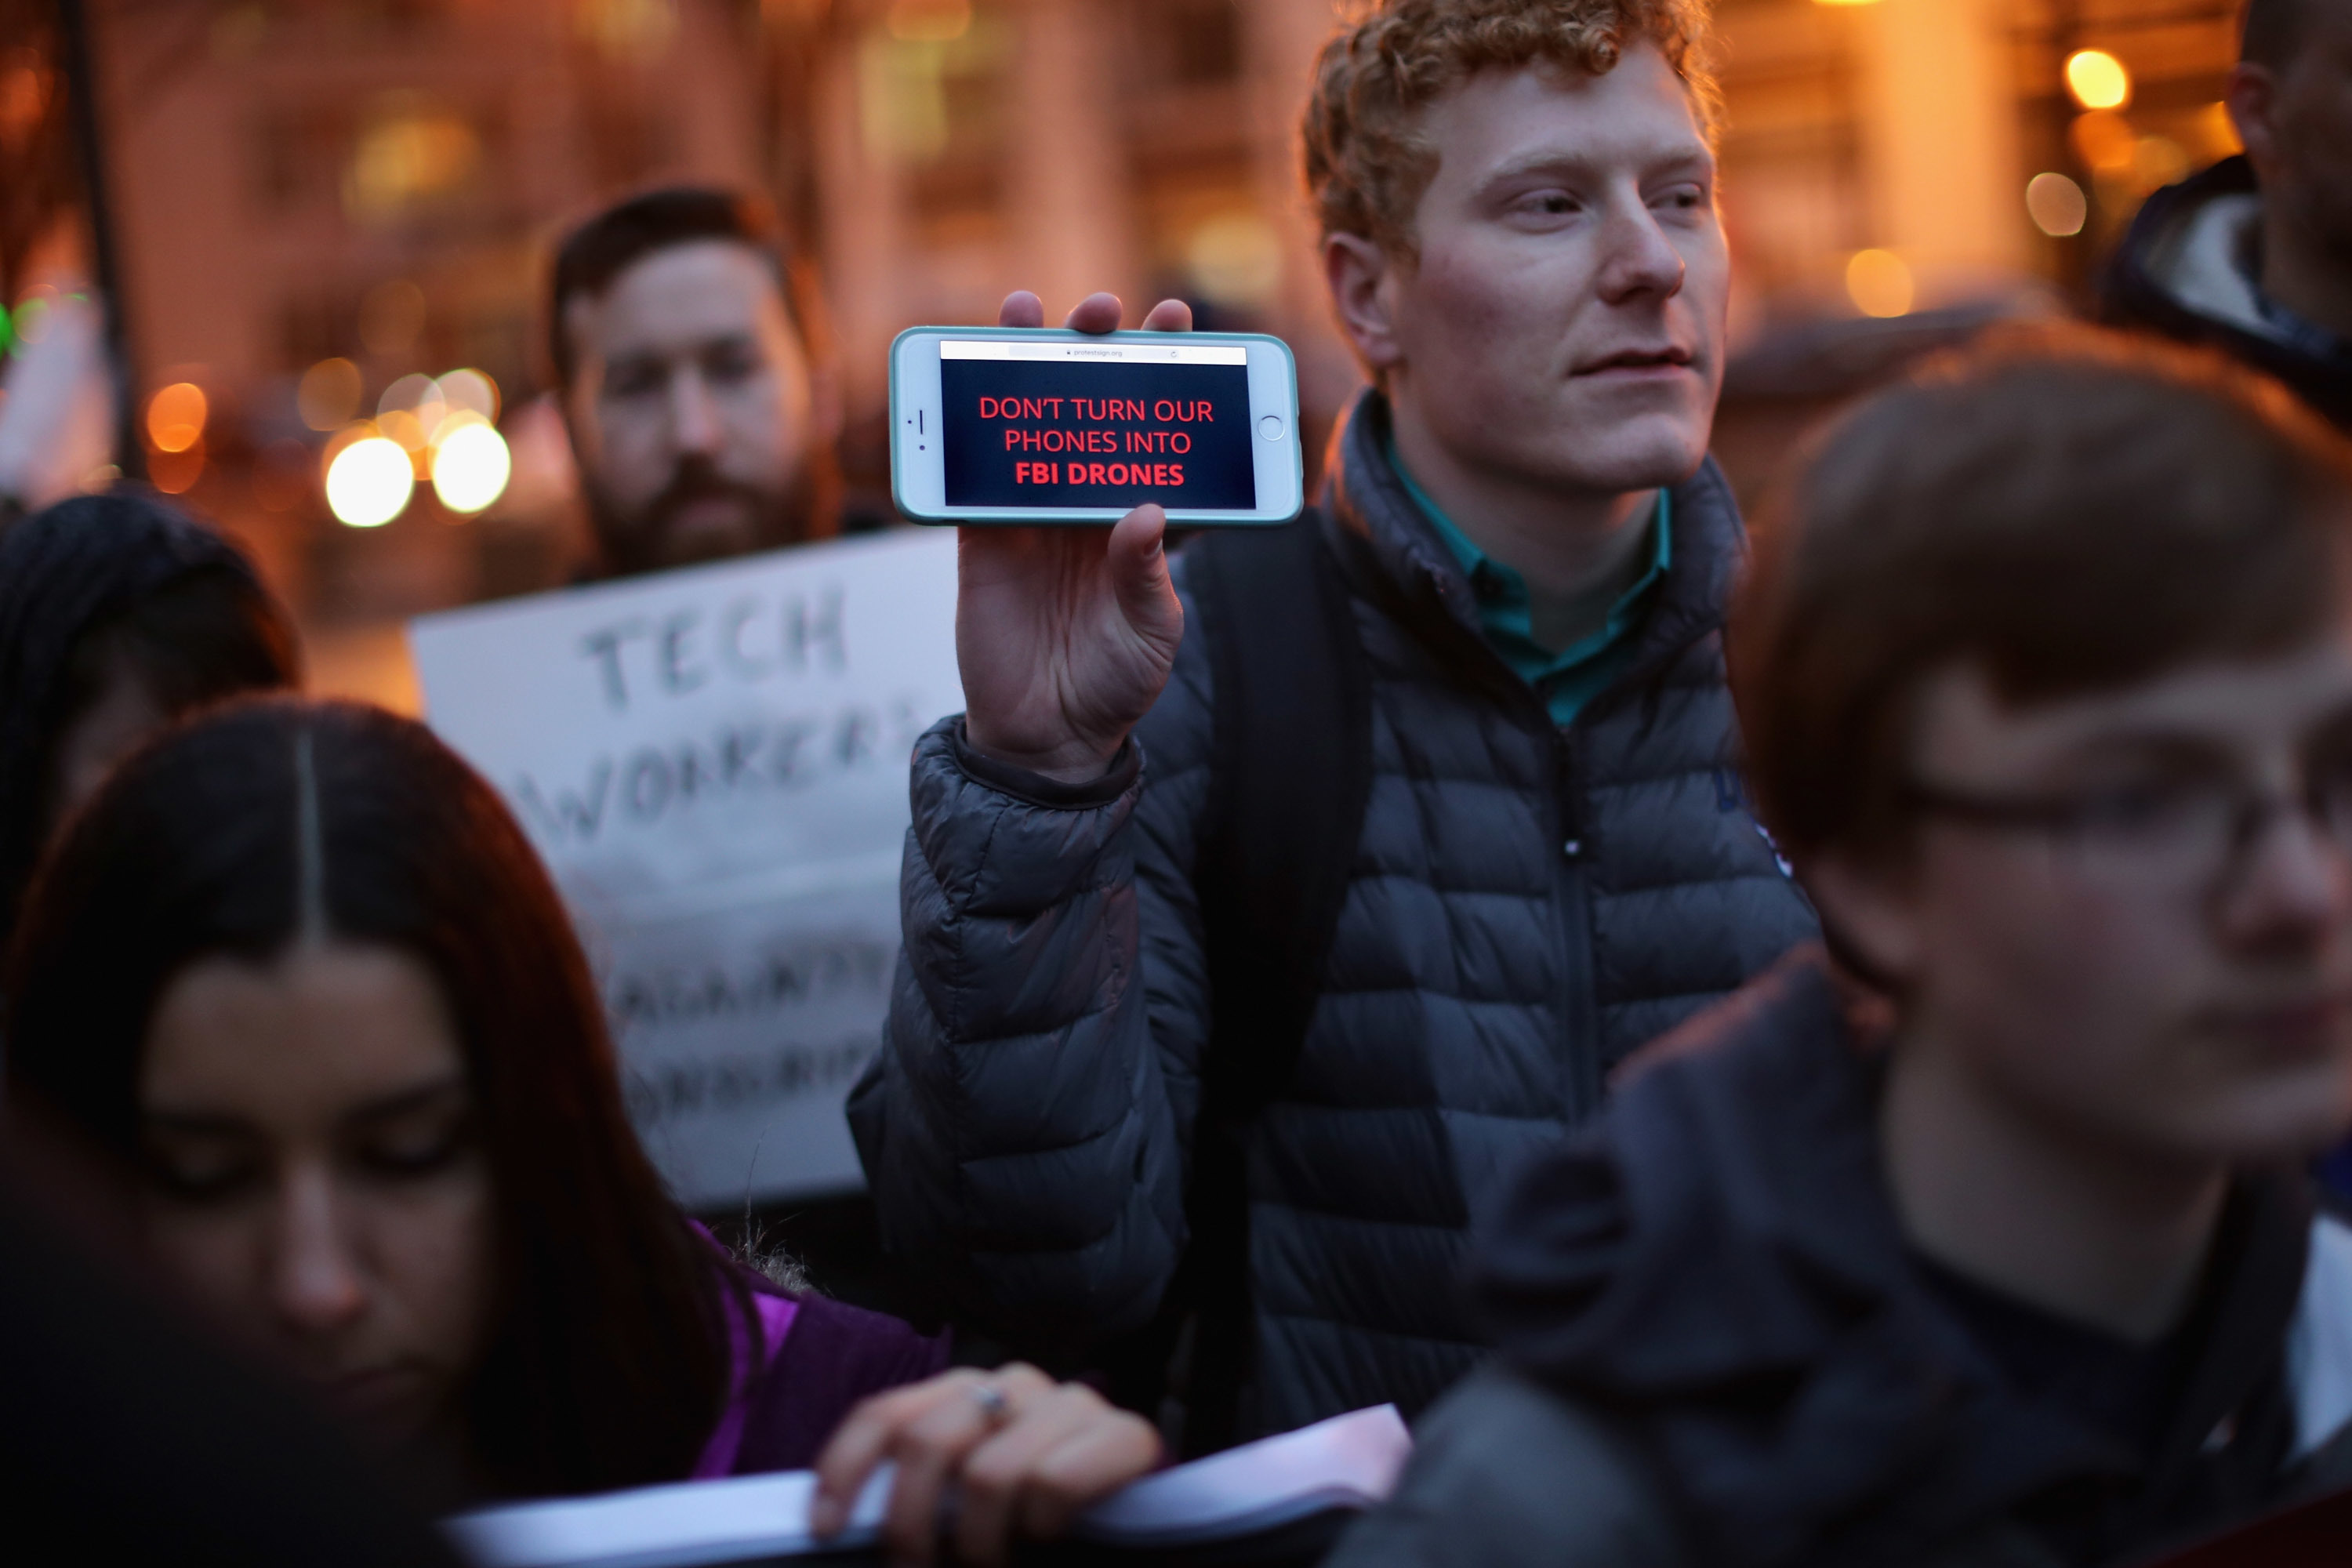 Organized by Fight for the Future, about a dozen protestors demonstrate outside the Federal Bureau of Investigation's J. Edgar Hoover headquarters in support of Apple and against a move by the federal government to force the computer company to create a 'backdoor' to the iPhone February 23, 2016 in Washington, DC.